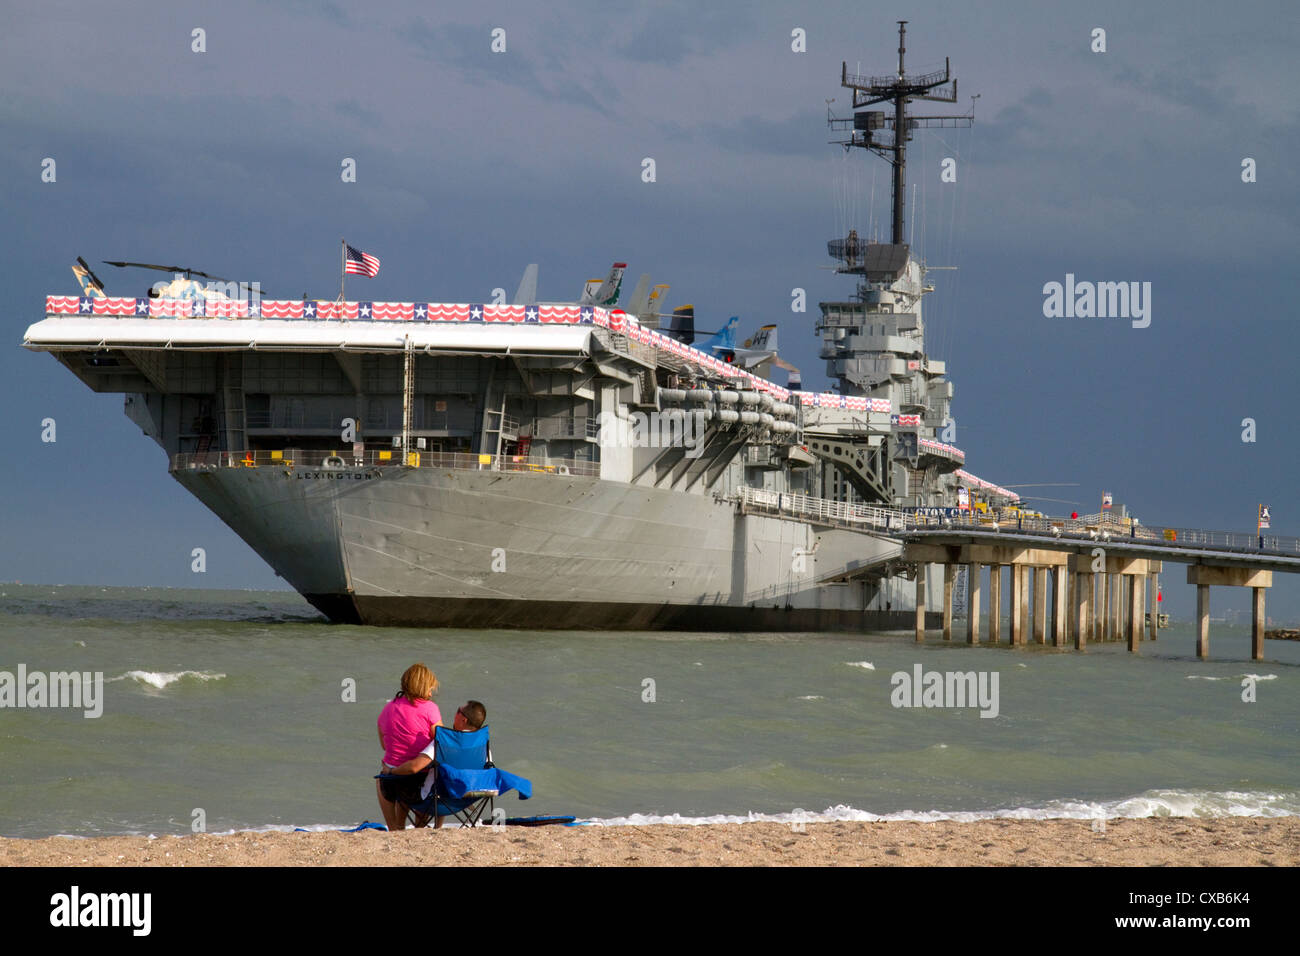 The USS Lexington, Essex-class aircraft carrier is a museum ship located in the bay at Corpus Christi, Texas, USA. - Stock Image